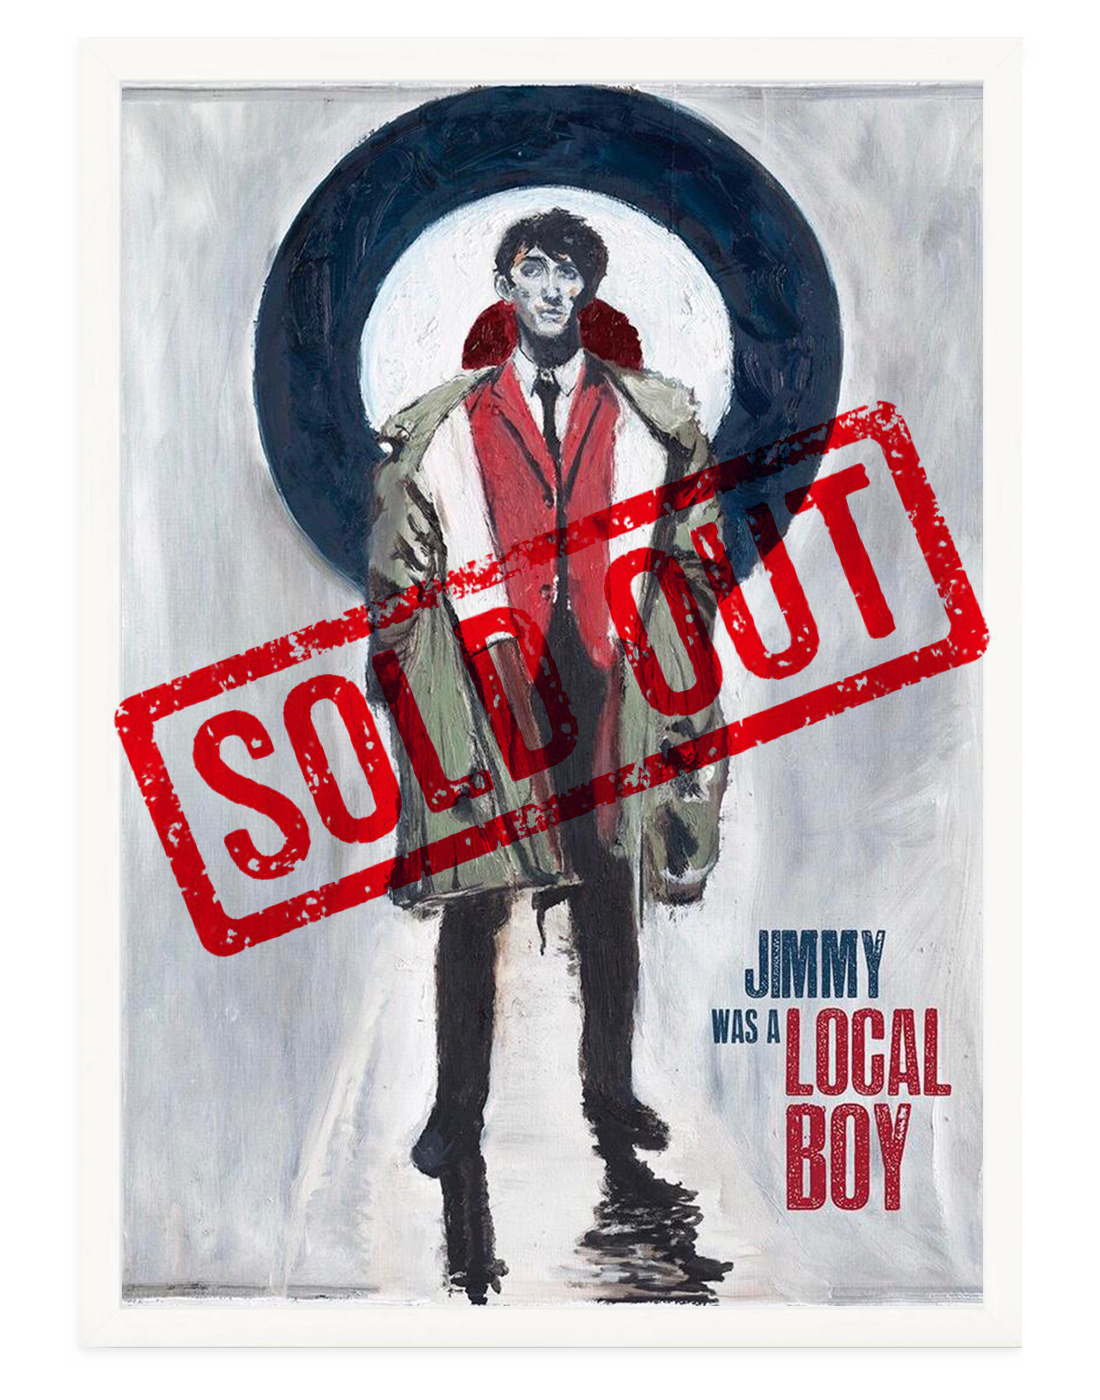 Local Boy SOLD OUT - OPTION #1